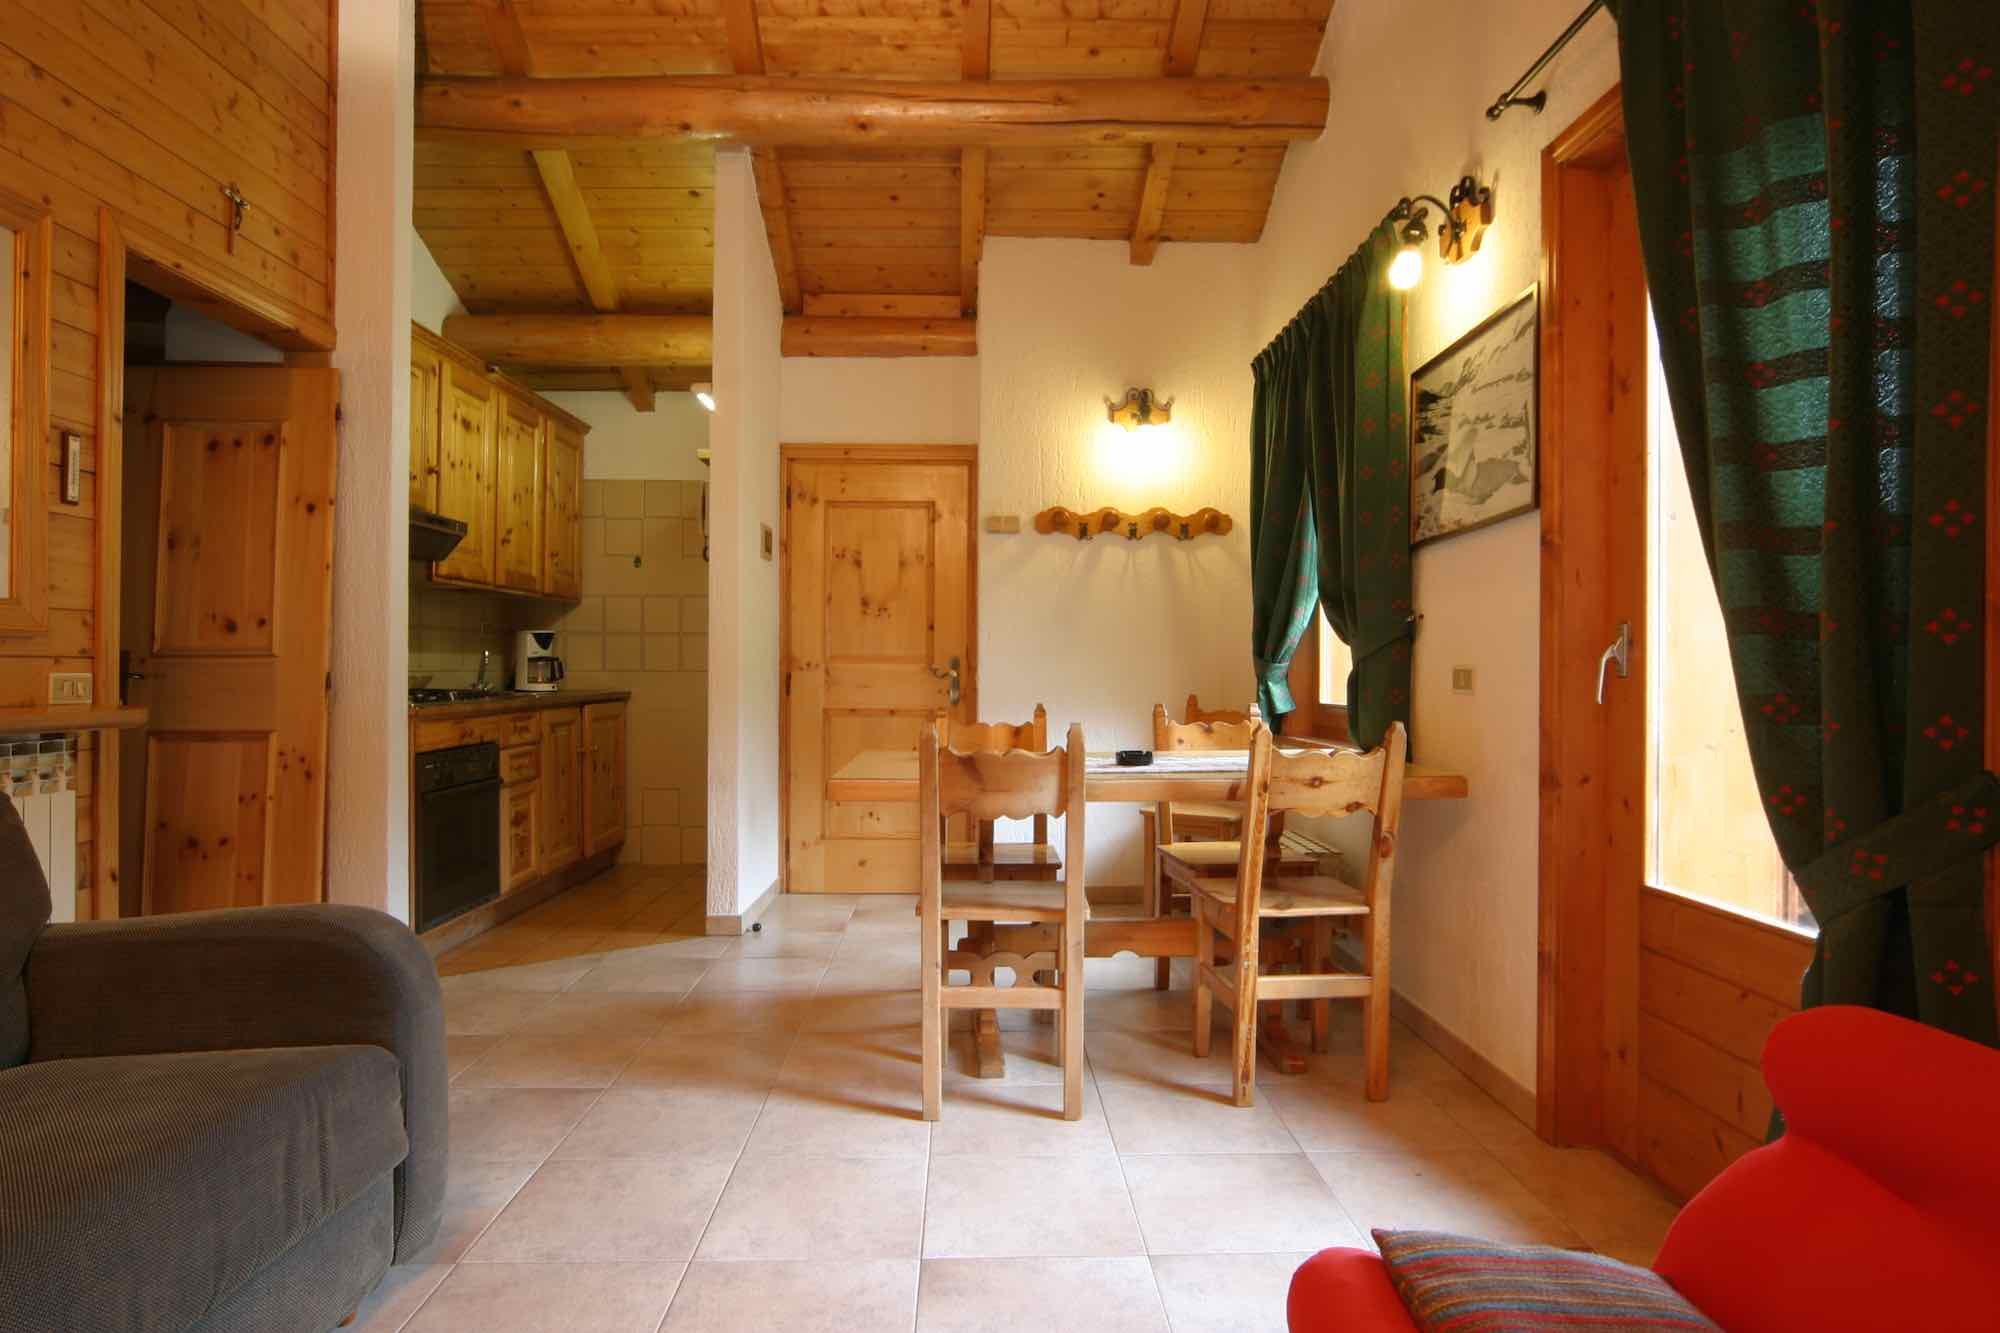 Bait da Borch - Via Saroch N.1430/f, Livigno 23041 - Apartment - Appartamento Vetta 1